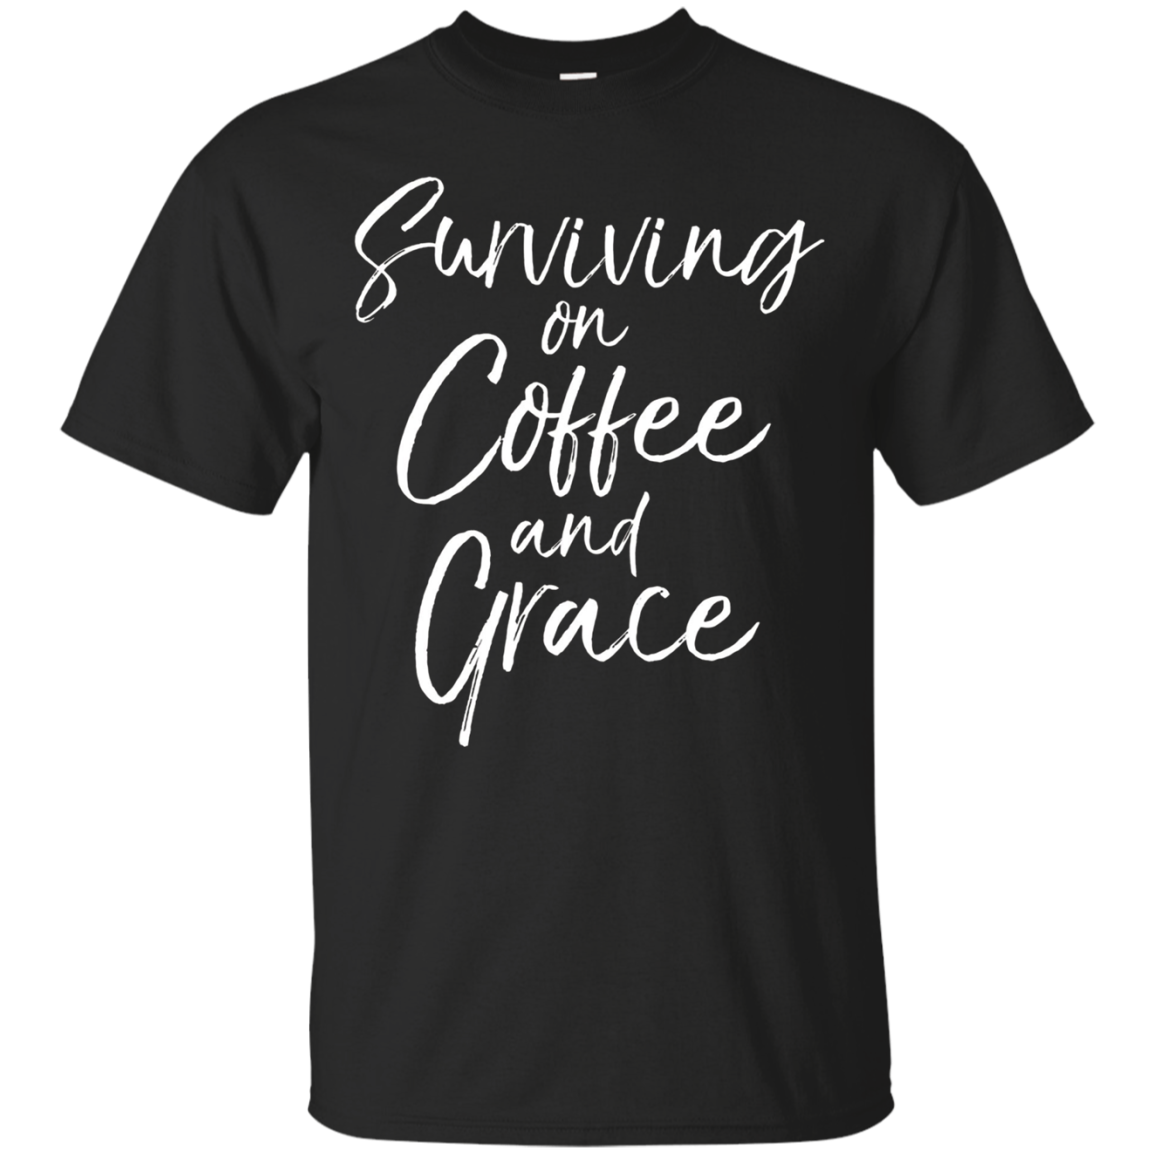 Surviving on Coffee and Grace Shirt Cute Christian Jesus Tee